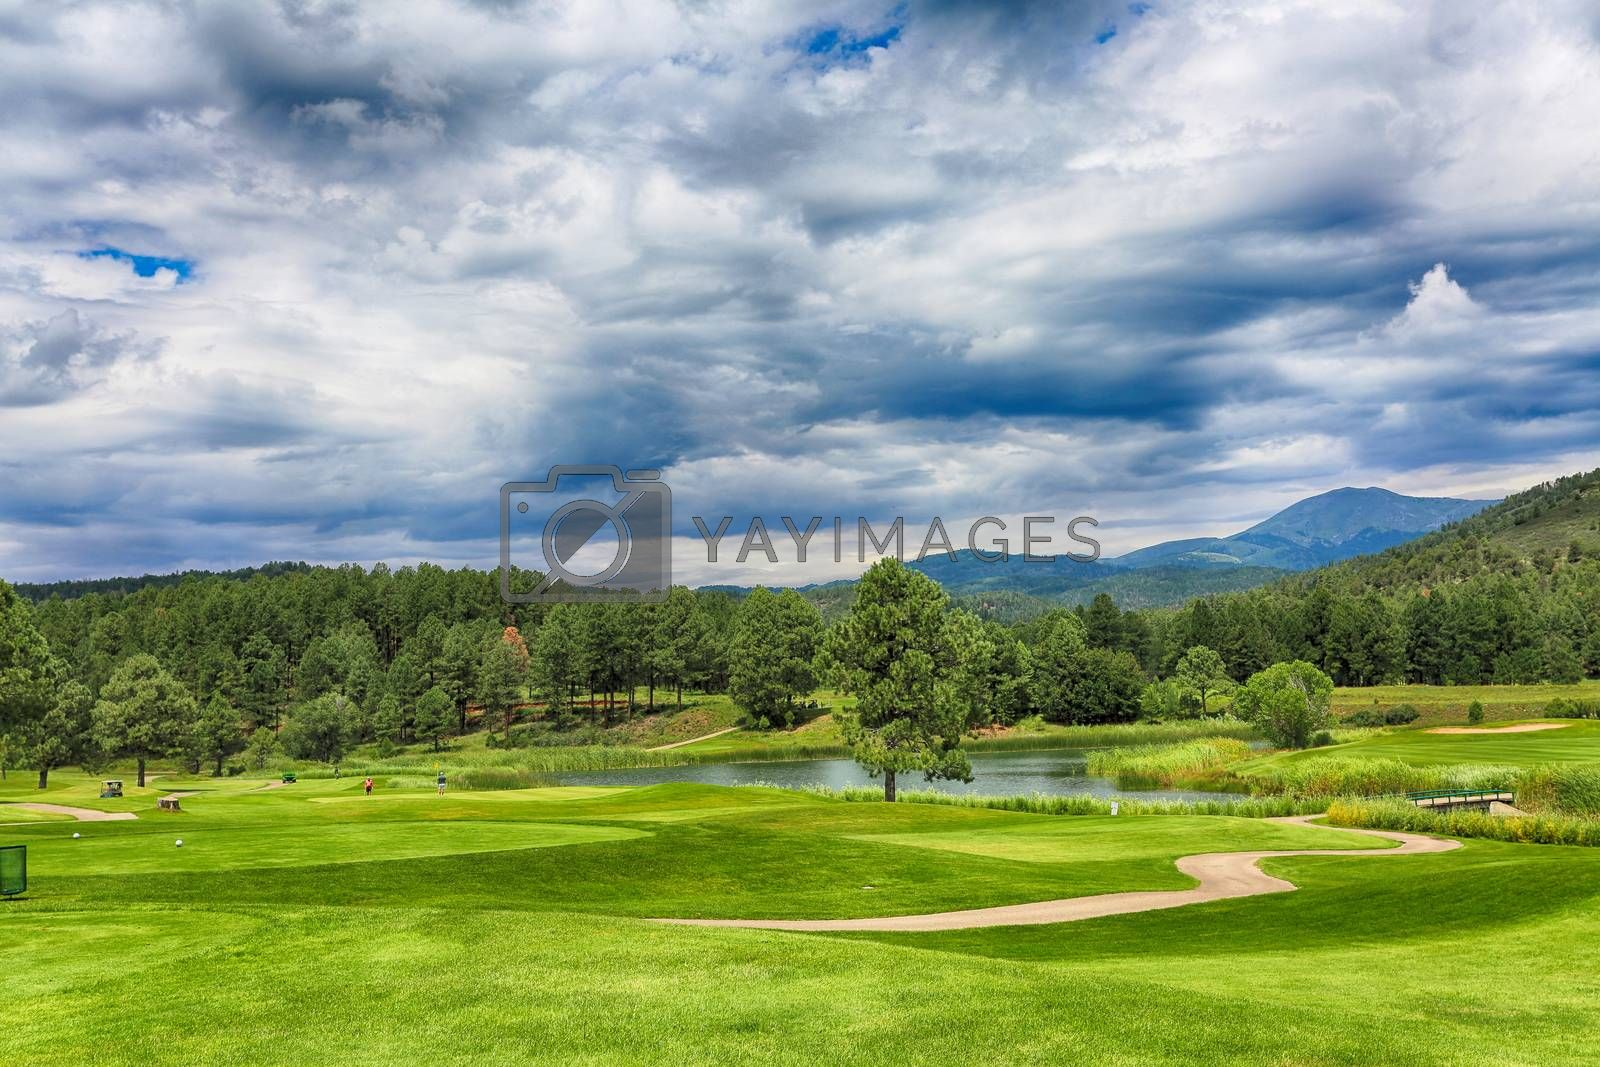 New Mexico's Inn of the Mountain Gods mountain resort, golf courses- one of the most spectacular golf courses in the country. HDR image.